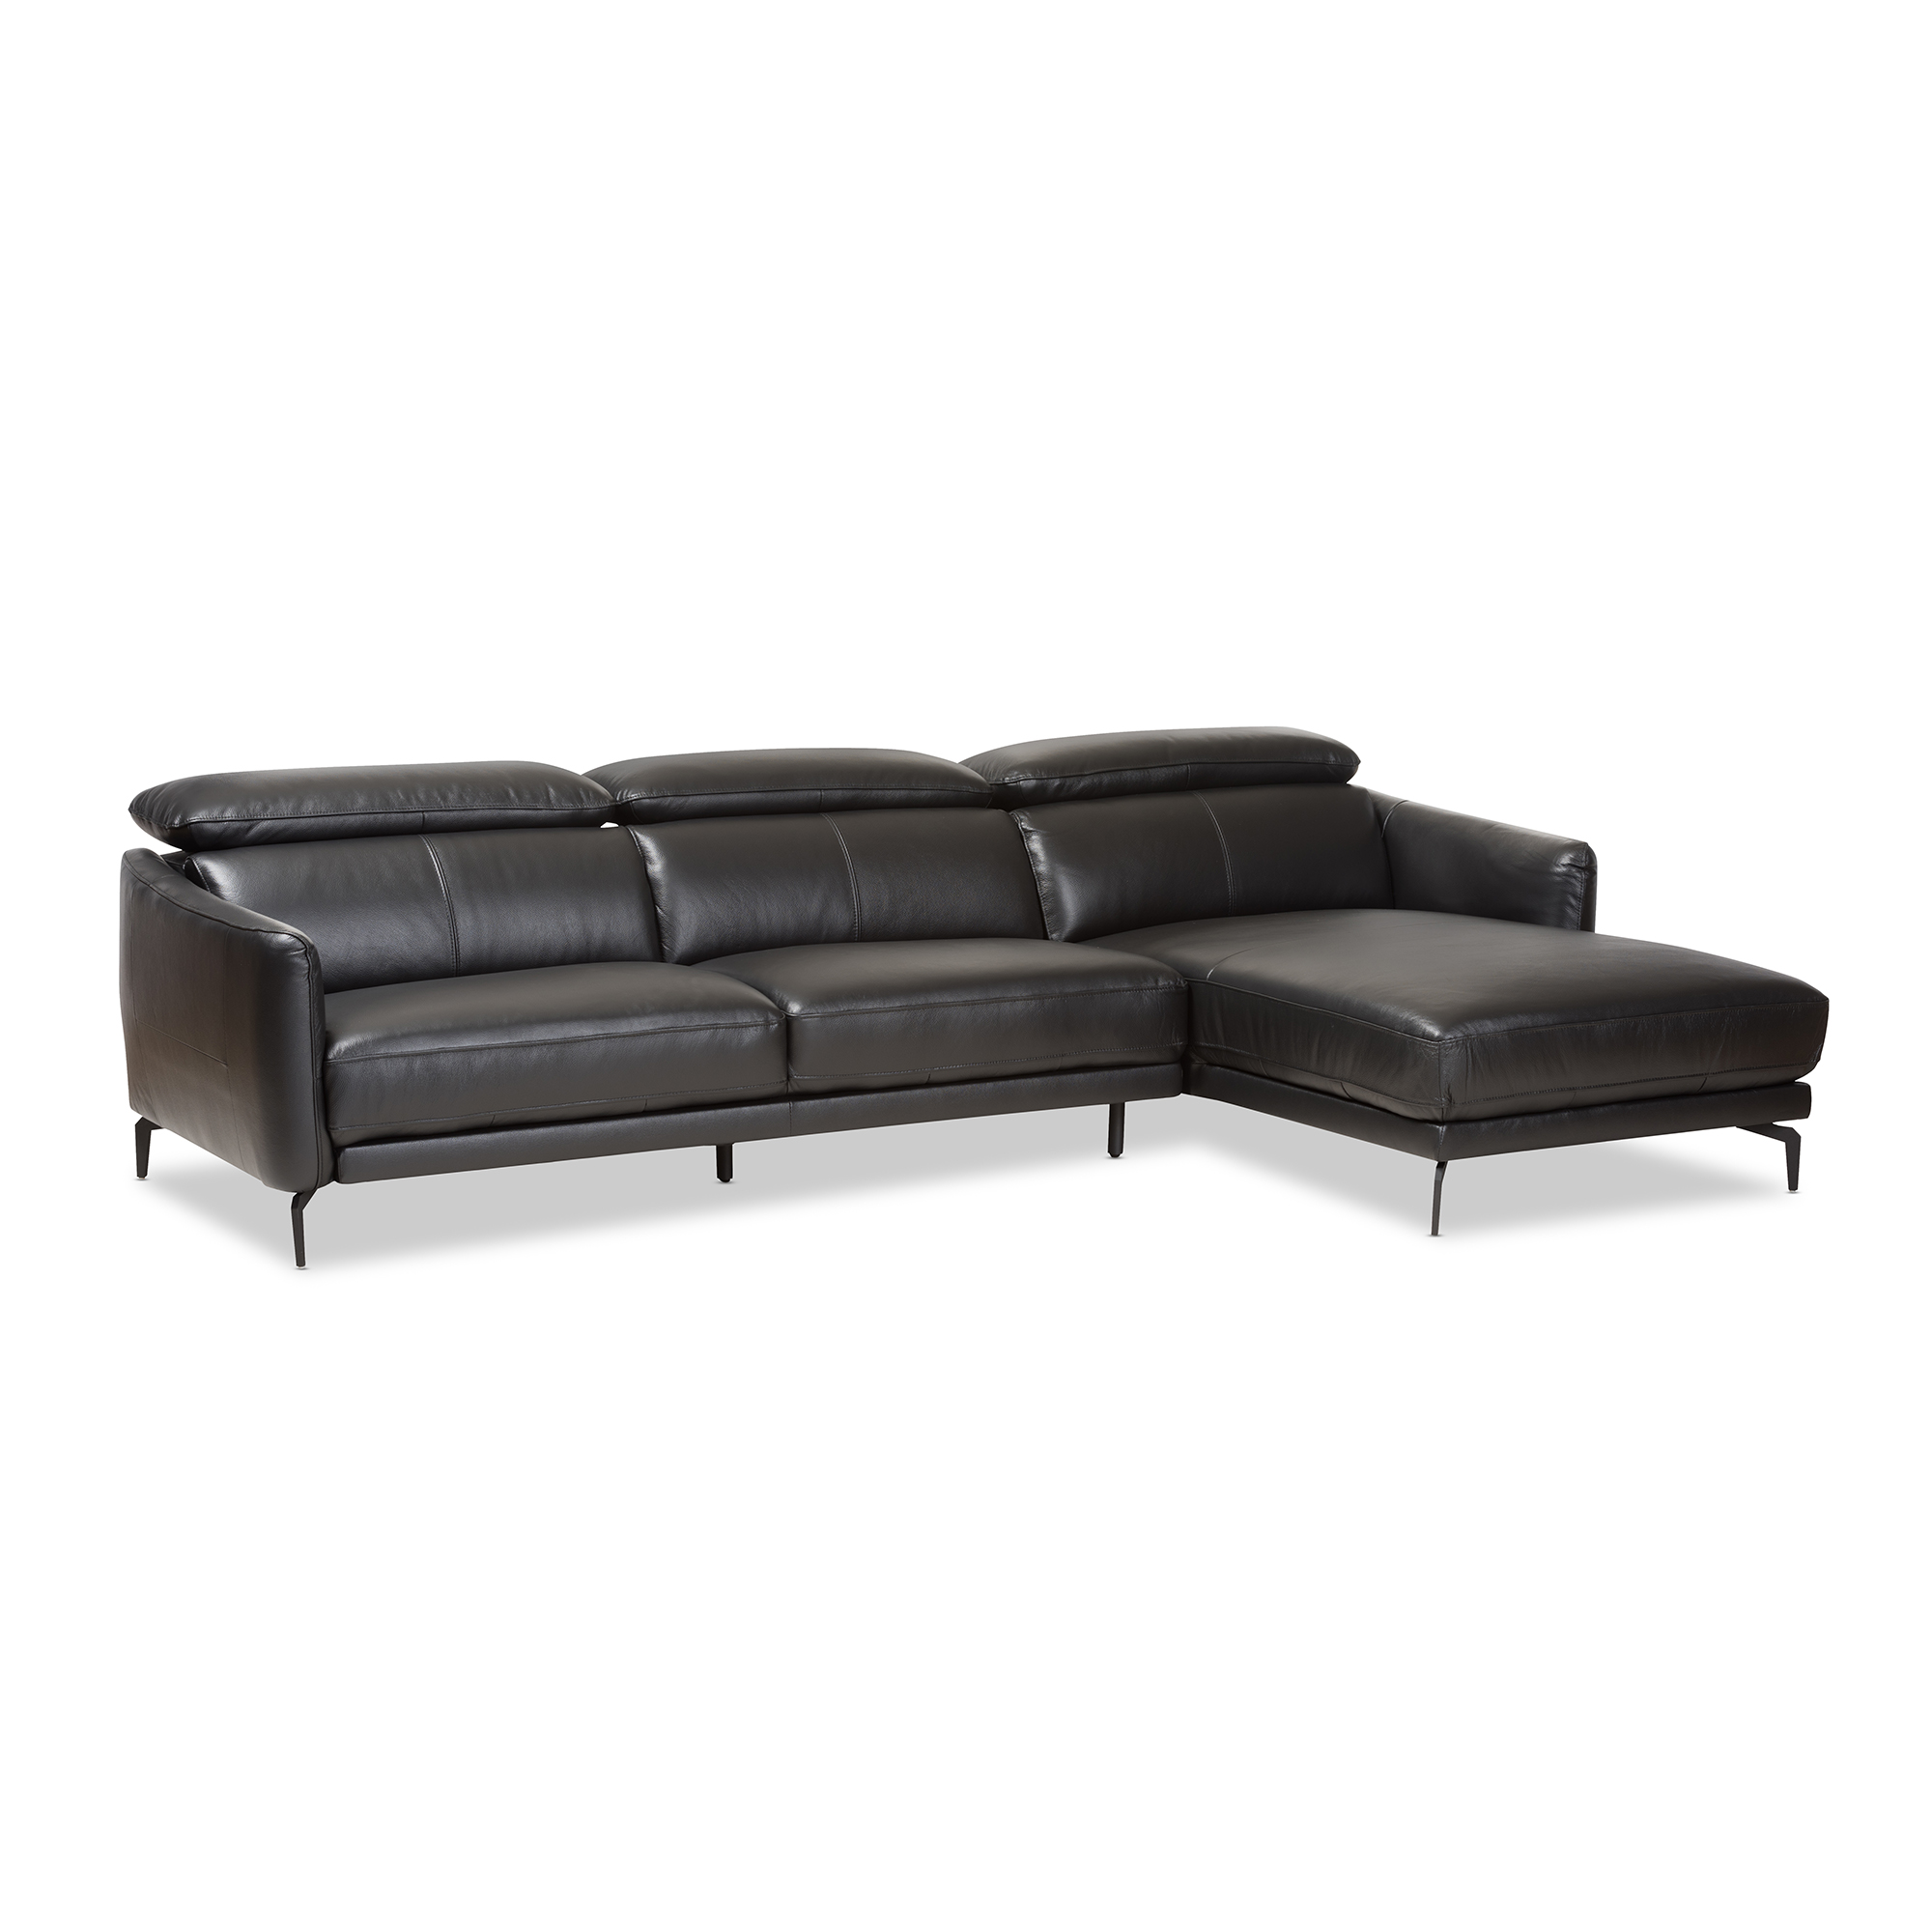 Baxton Studio Paige Modern And Contemporary Black Leather Right Facing  Chaise 2 Piece Sectional Sofa